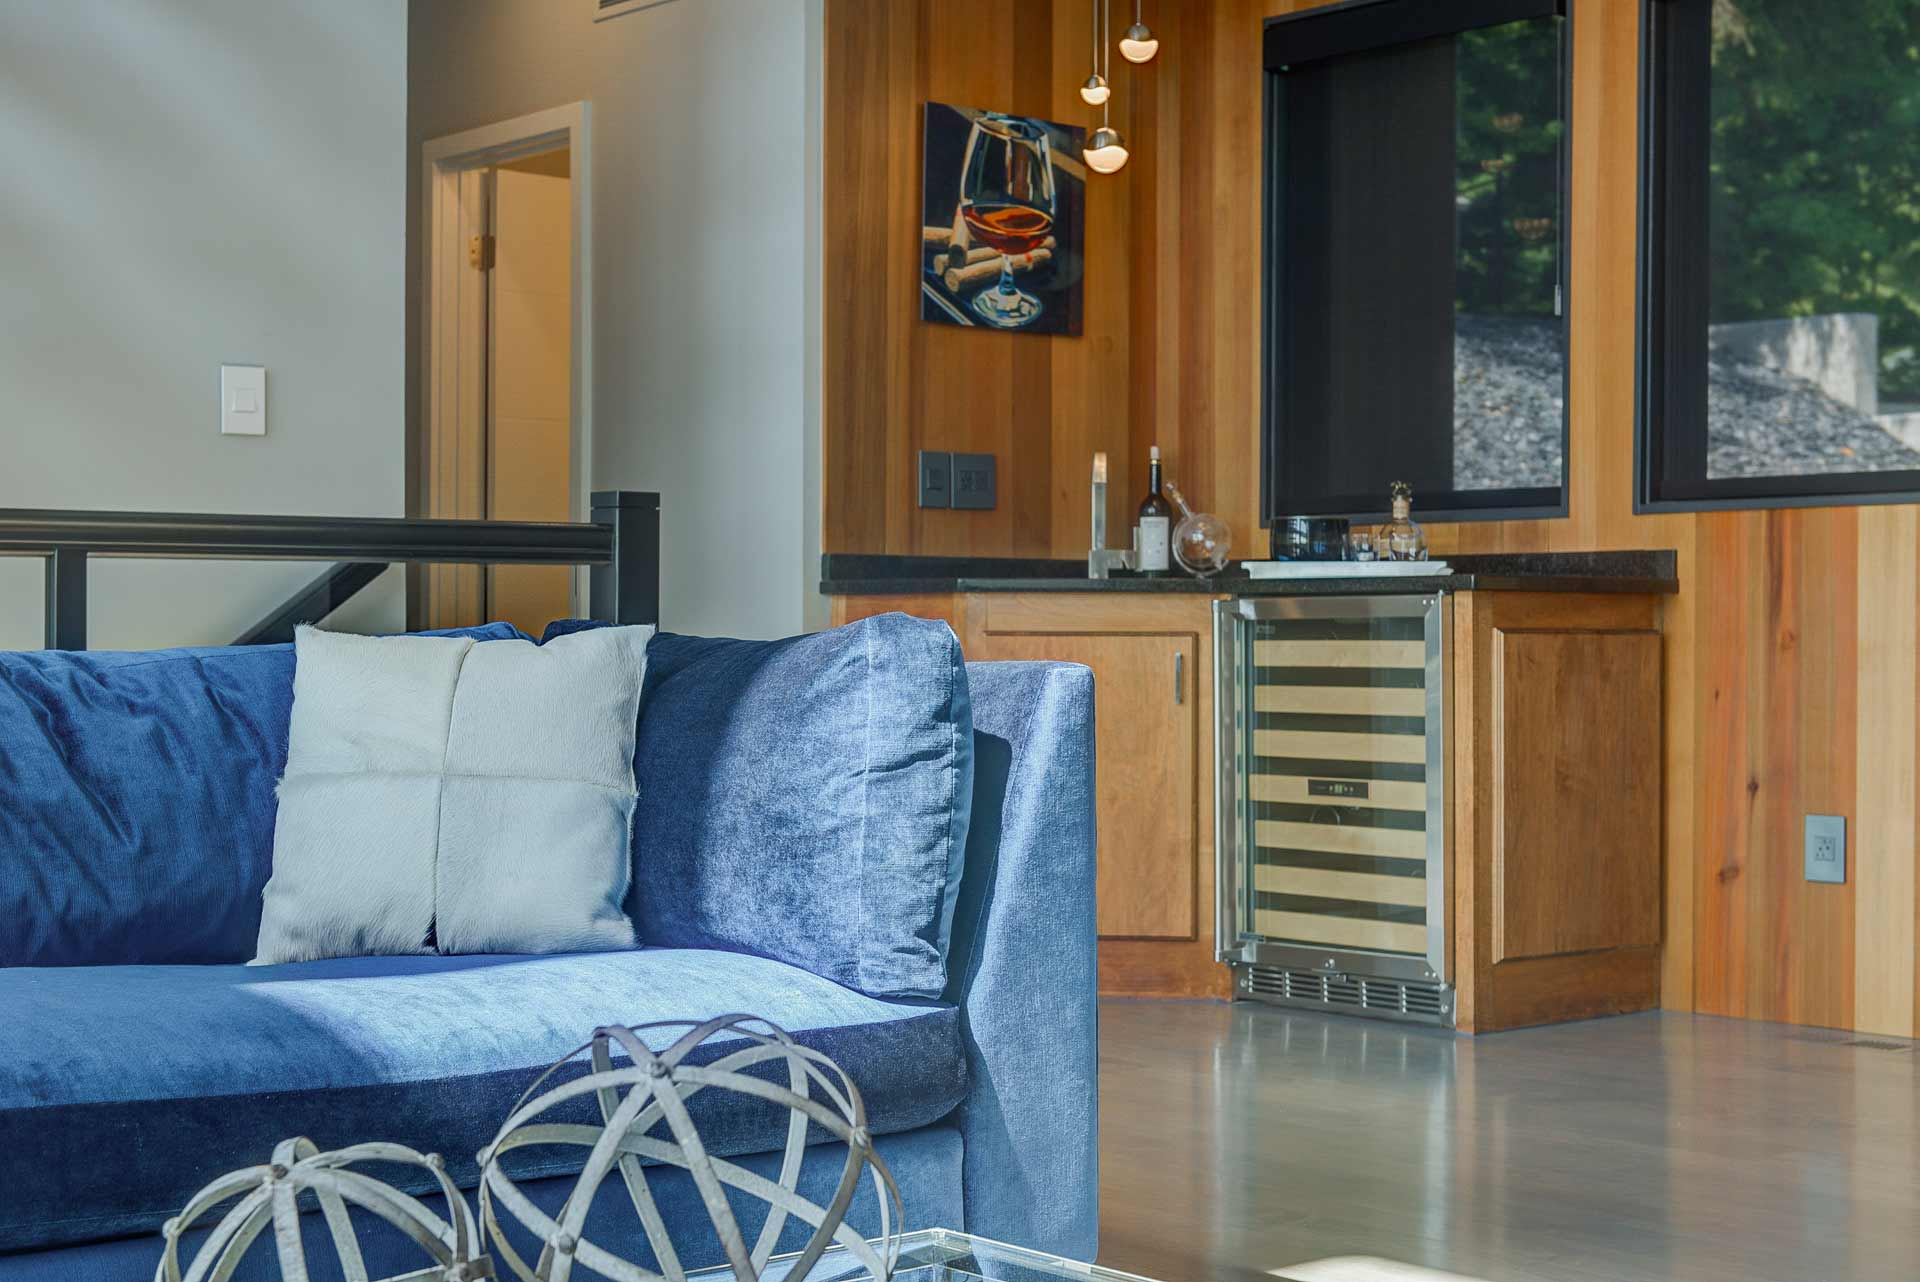 Living space features wet bar (blue sectional sofa) - Reef Court Light Renovation - Geist Reservoir - Indianapolis, IN - Photo by Structured Photography